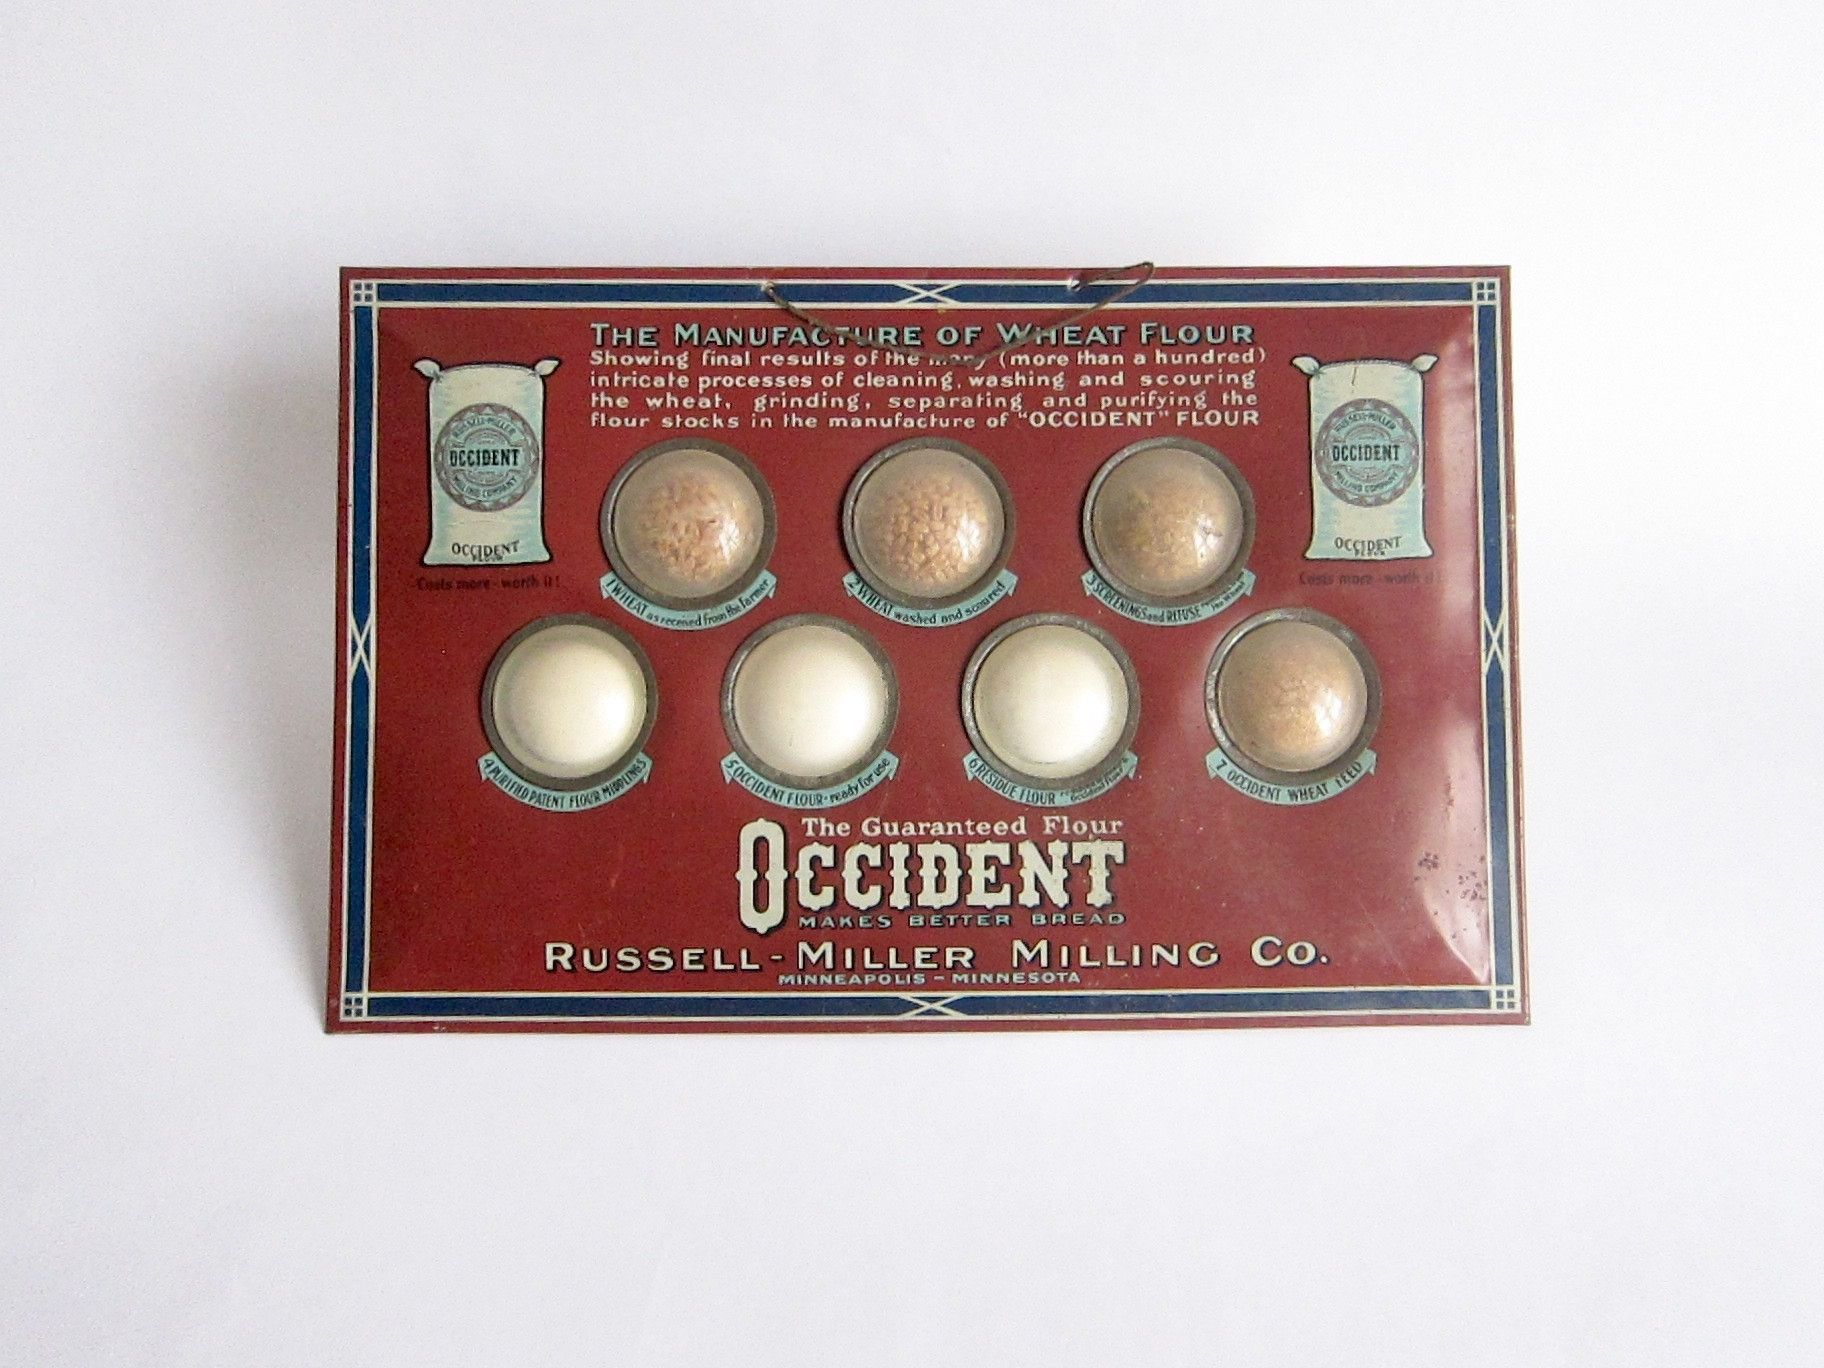 Vintage Advertising Occident Wheat Flour Store Display Russell Miller Milling Co